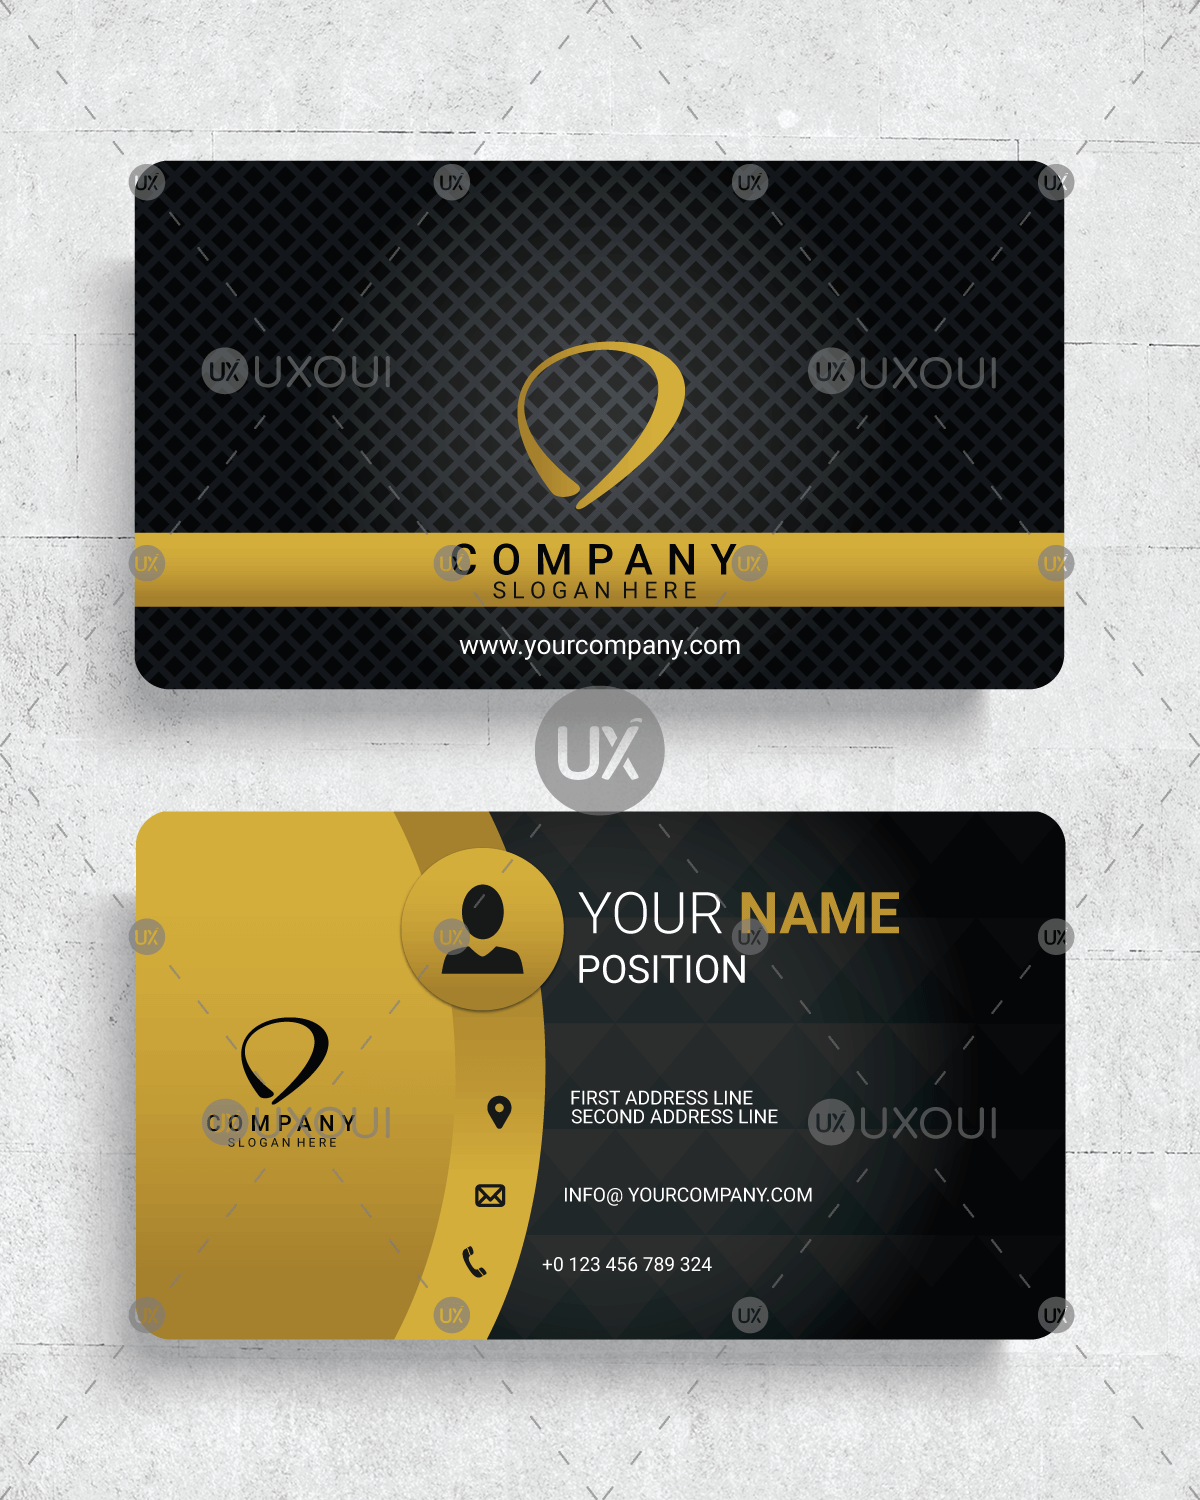 Premium Luxury Business Card Design Template Vector With Black